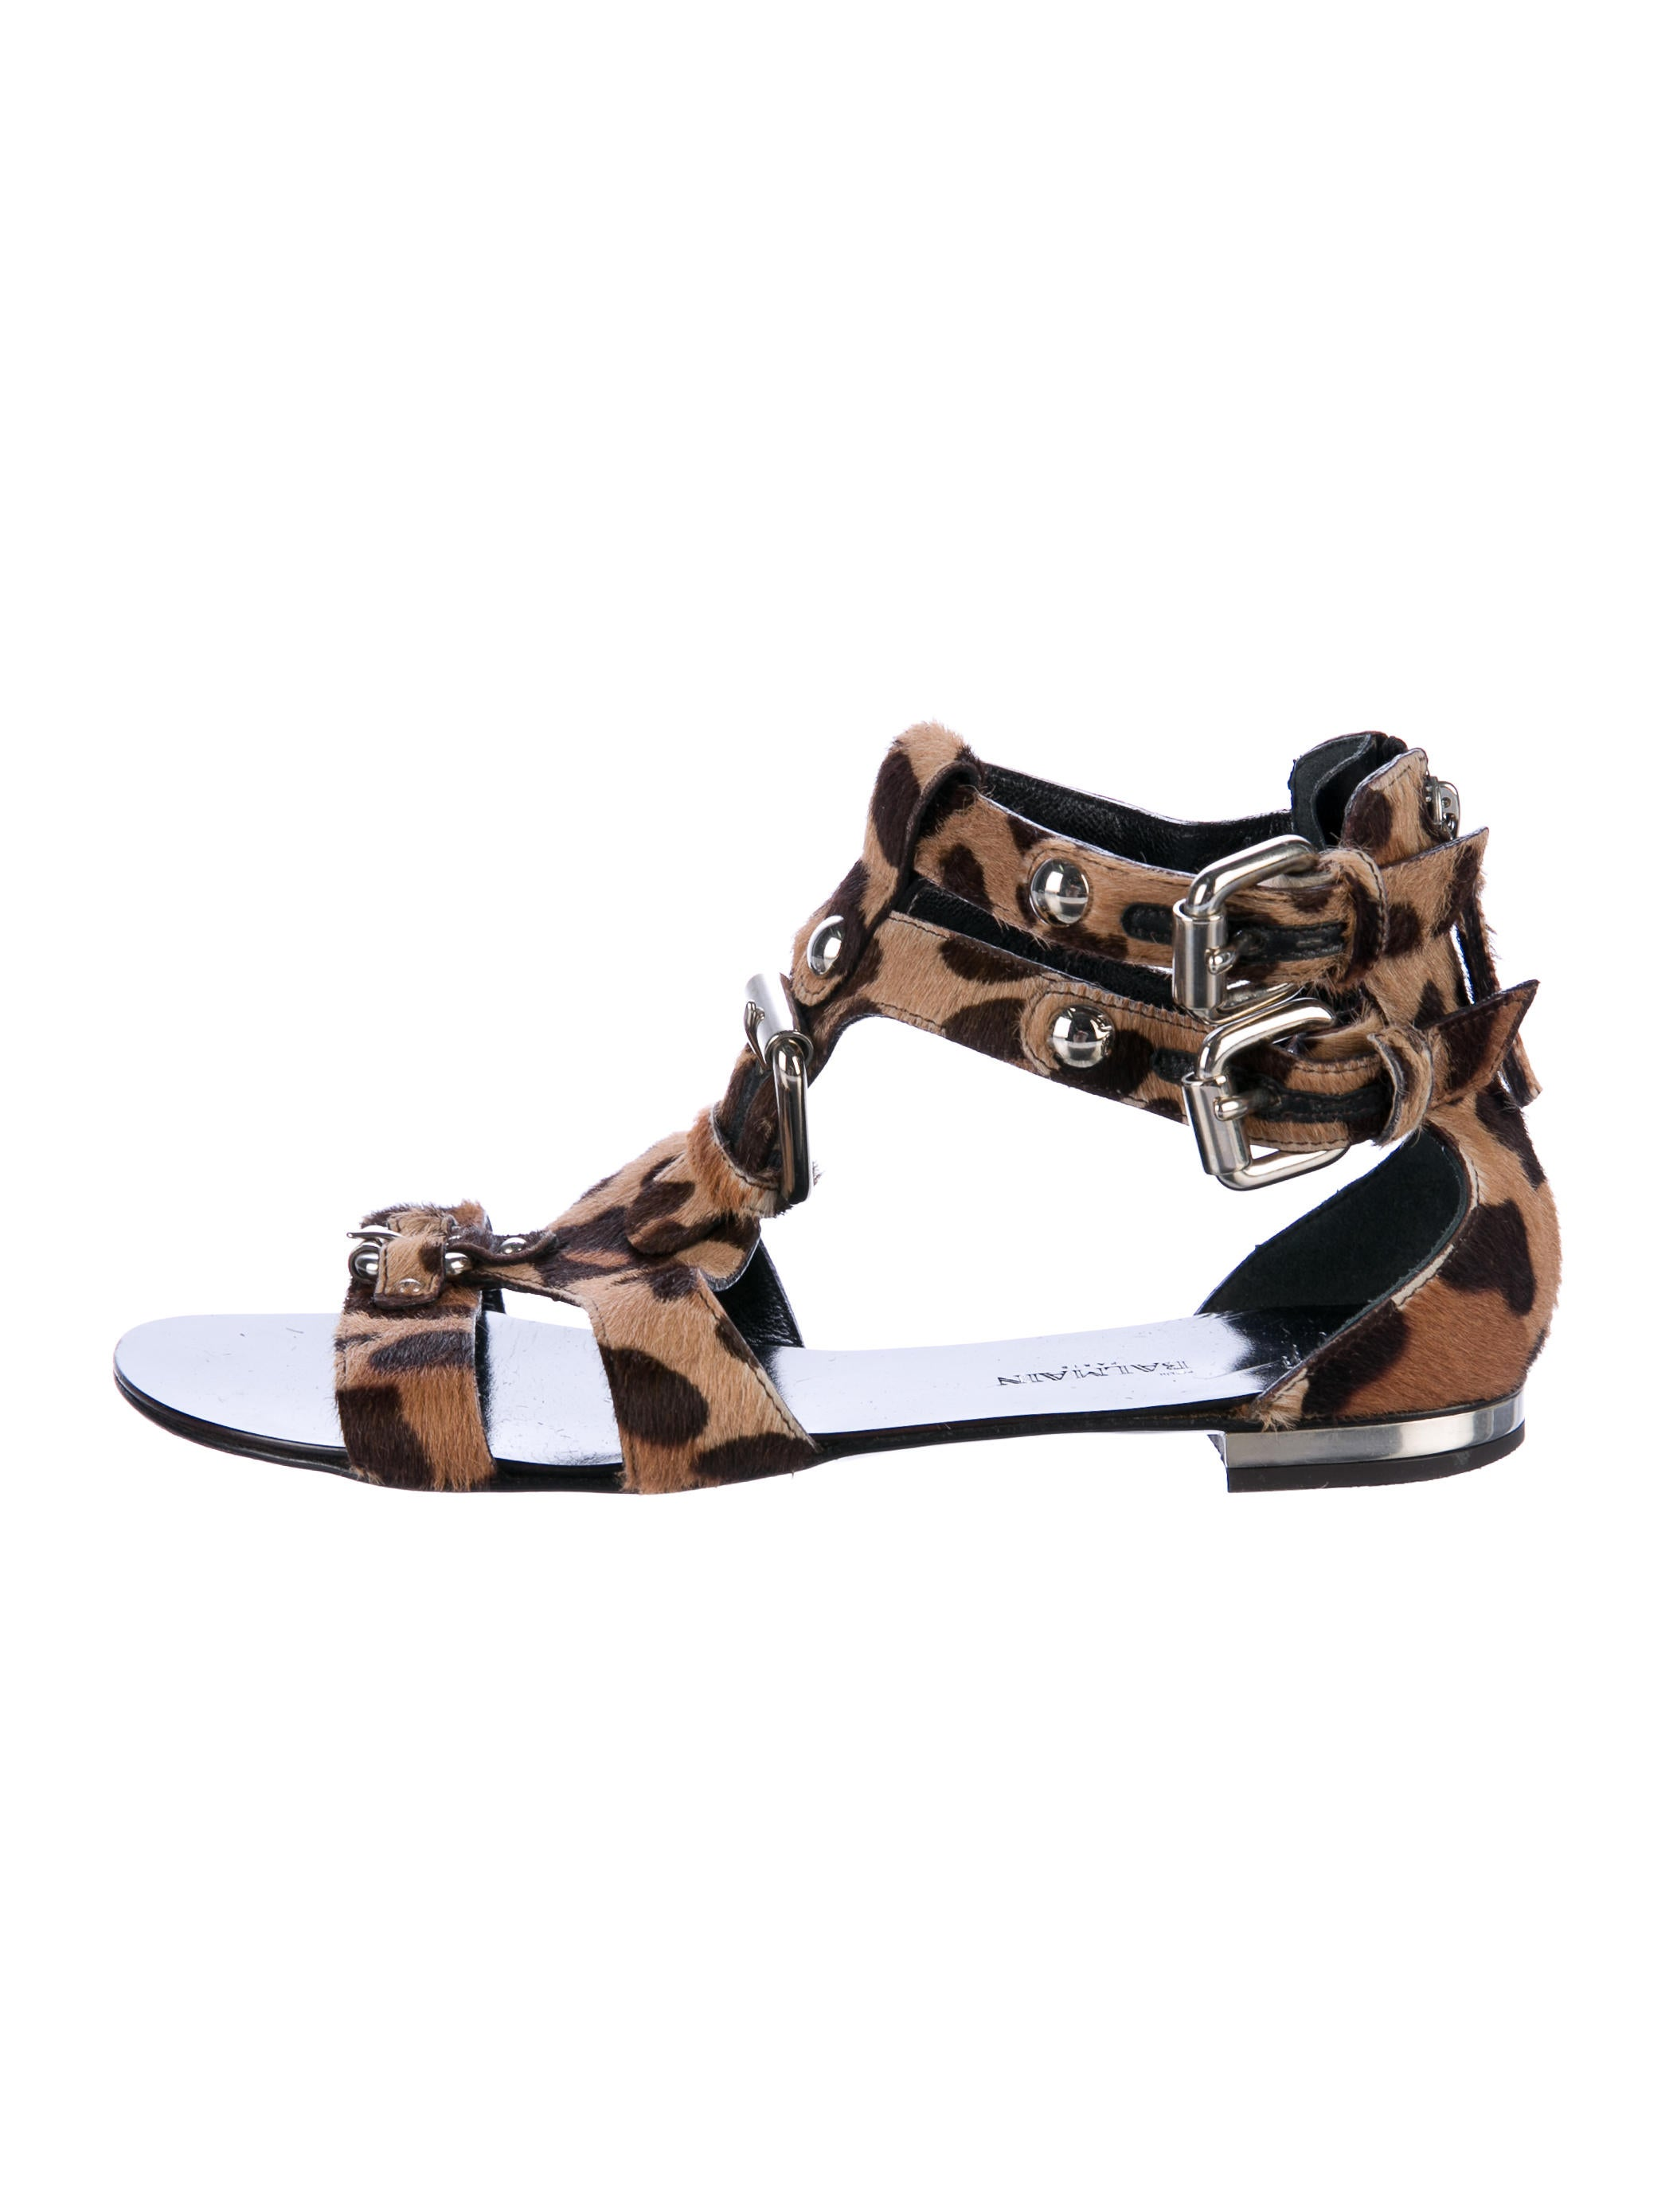 sast sale online Giuseppe Zanotti Ponyhair Cage Sandals wholesale price for sale collections for sale cheap pay with paypal outlet wide range of myEum5DIlo